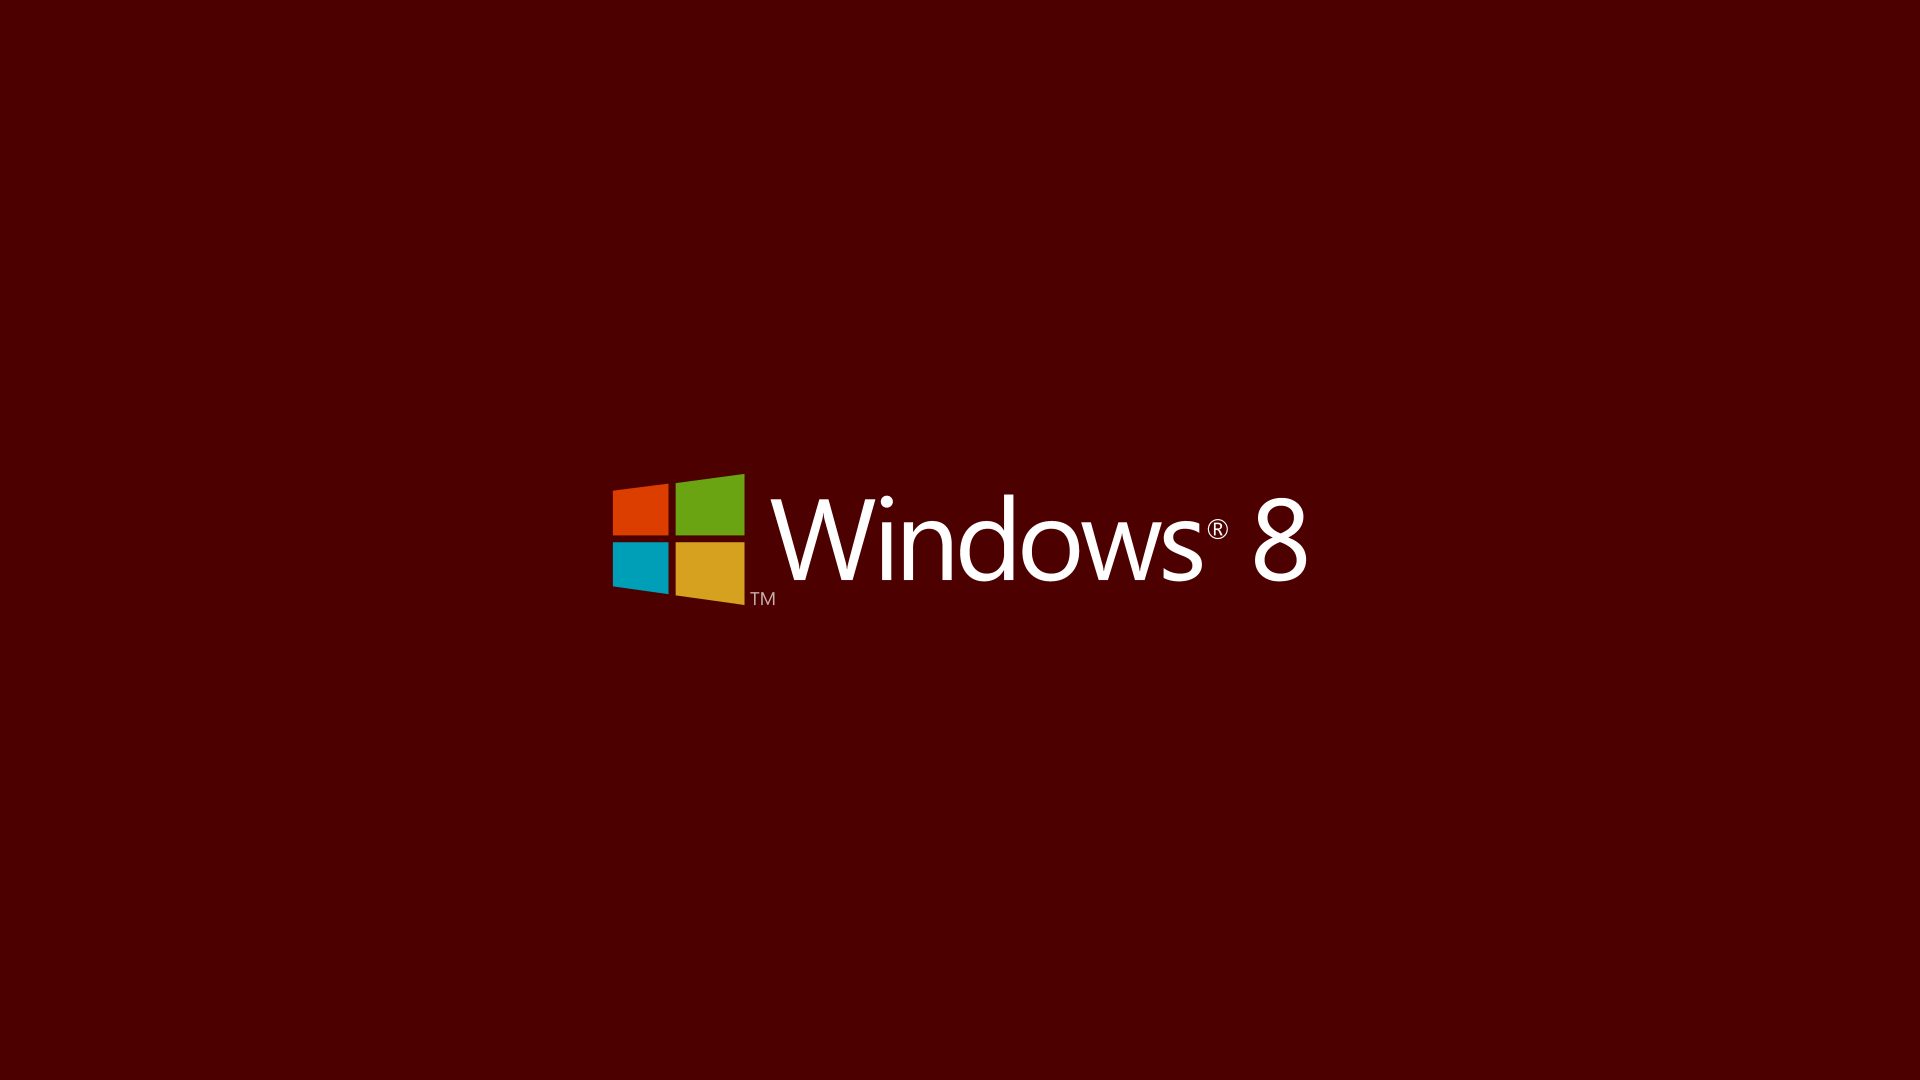 windows microsoft wallpapers images wallpaper 1920x1080 1920x1080